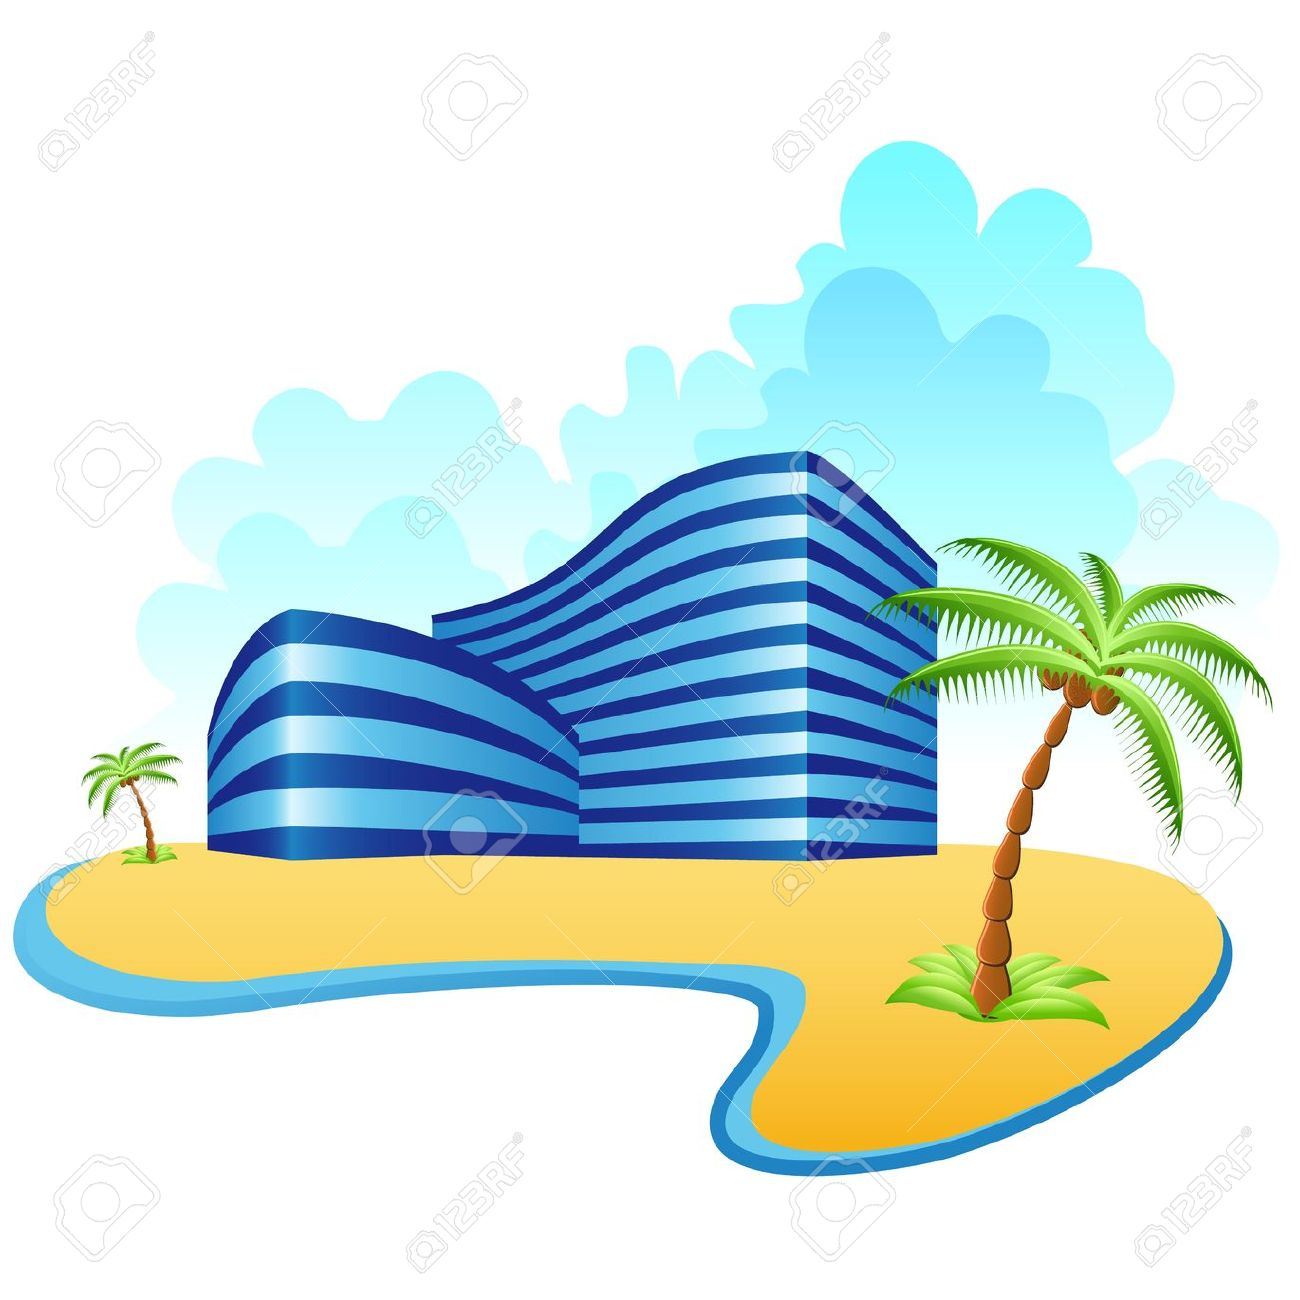 Holiday resort clipart #13